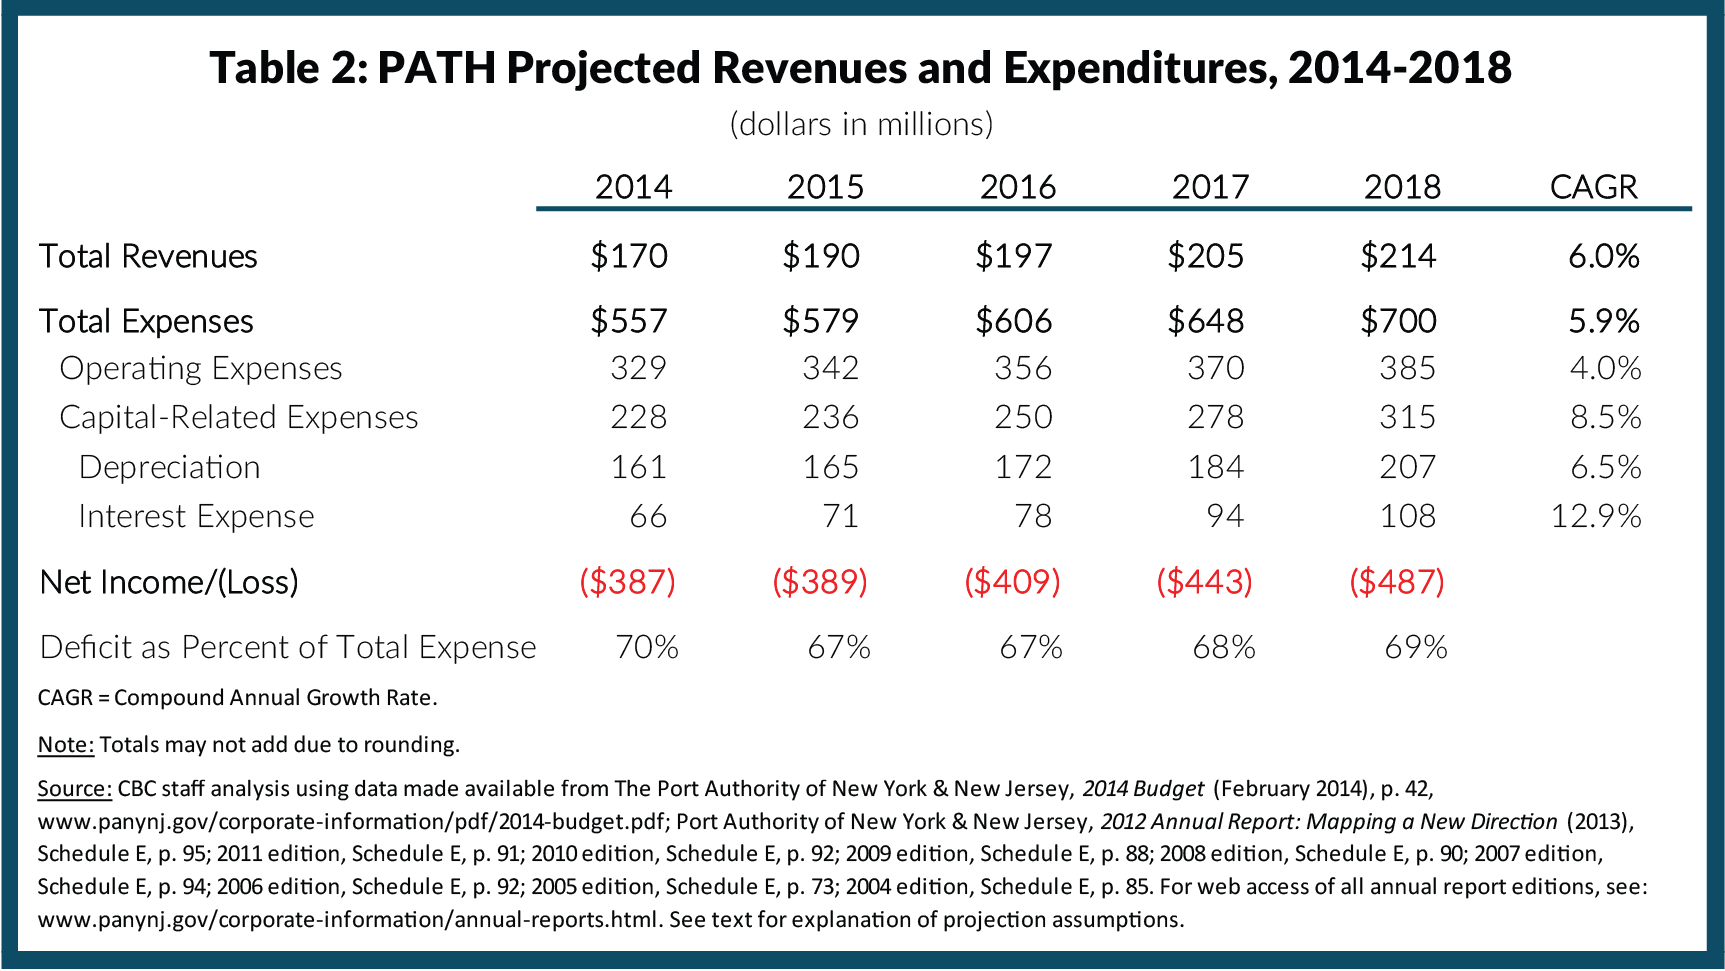 Table 2: PATH Projected Revenues and Expenditures, 2014-2018